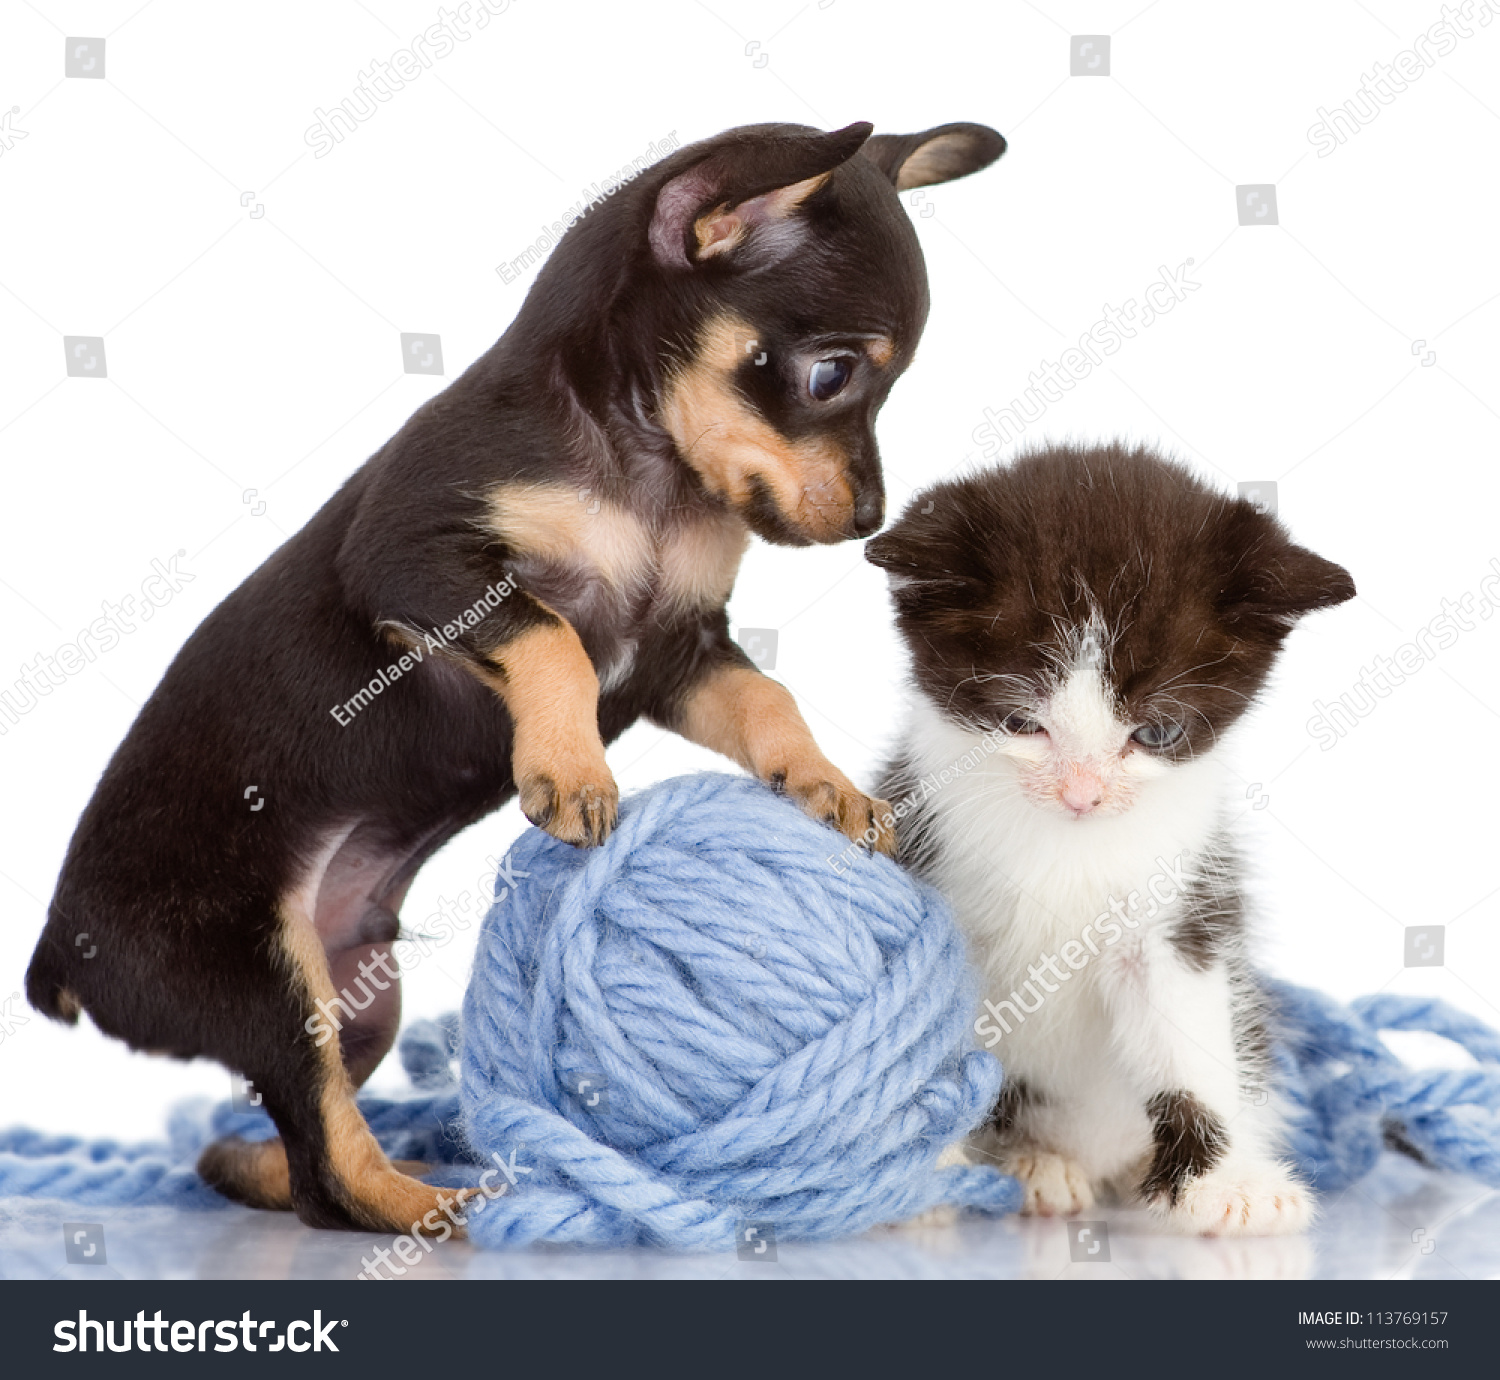 Kittens And Puppies To her Animals 2016